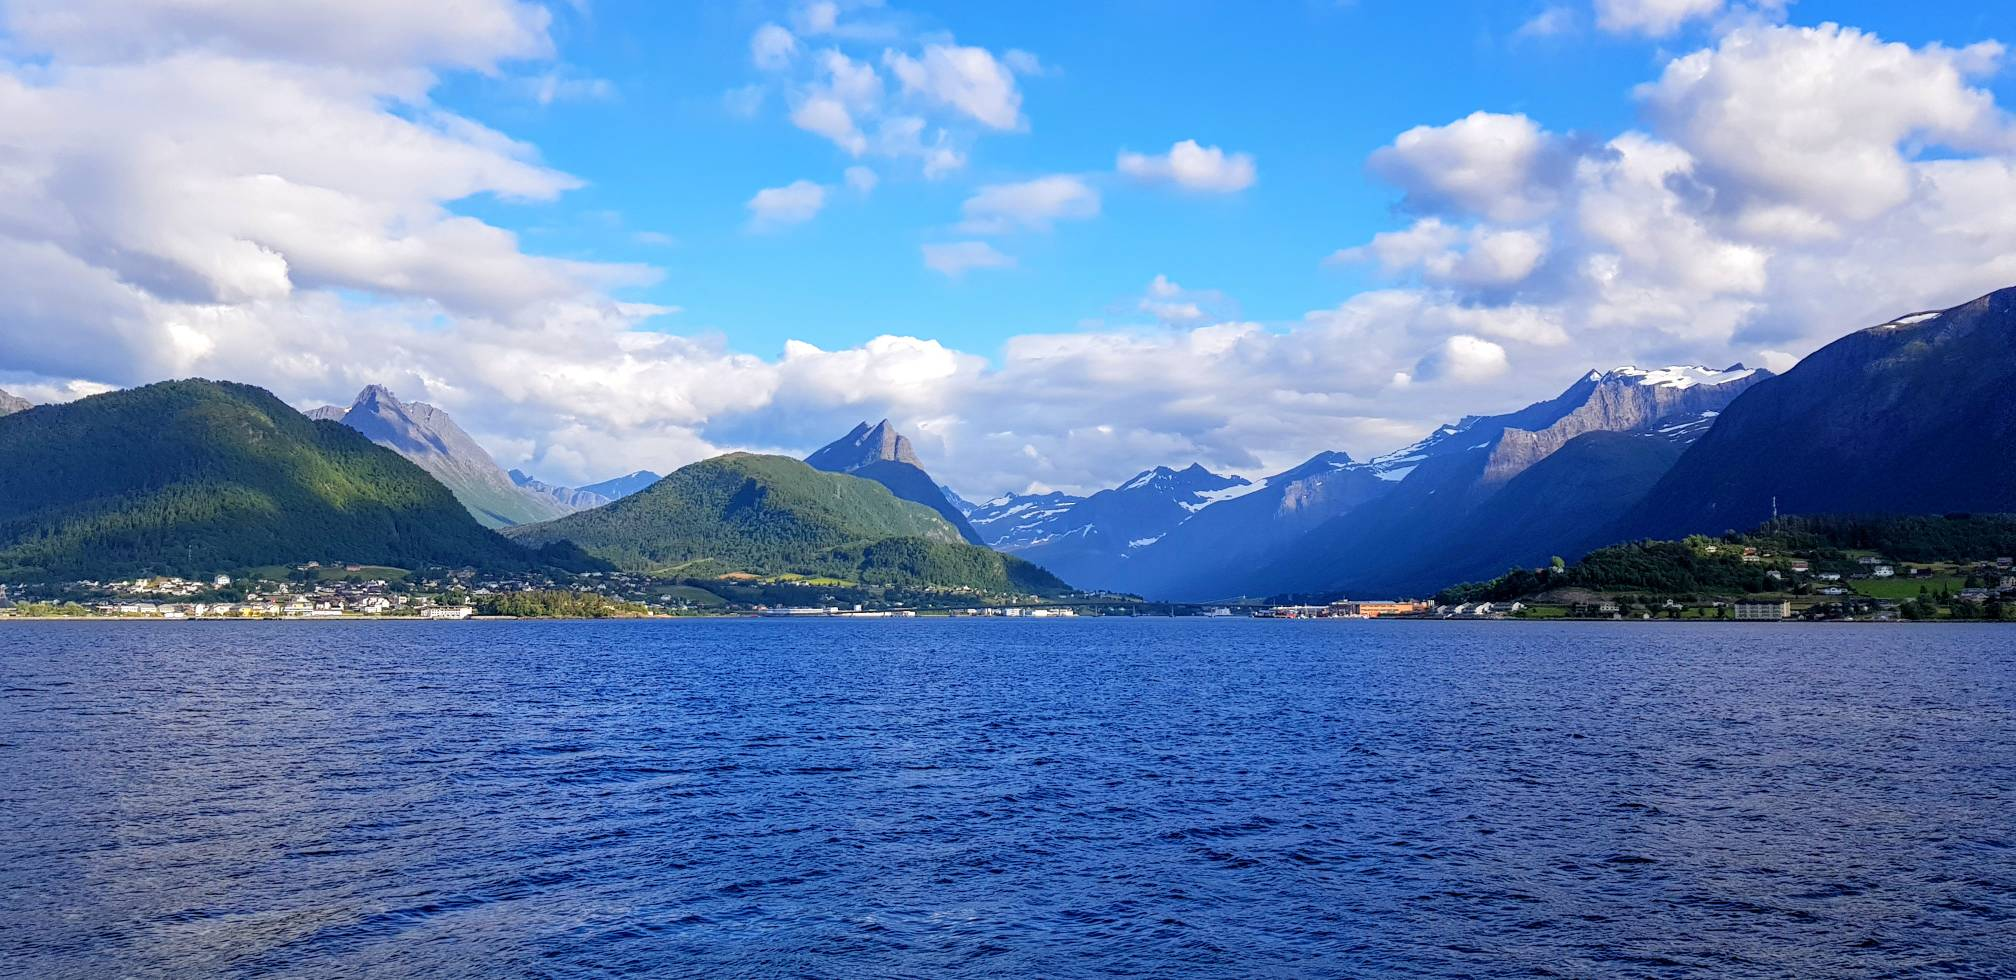 Sommer I Vakre Norge Summer In Beautiful Norway Nature Travel Norway